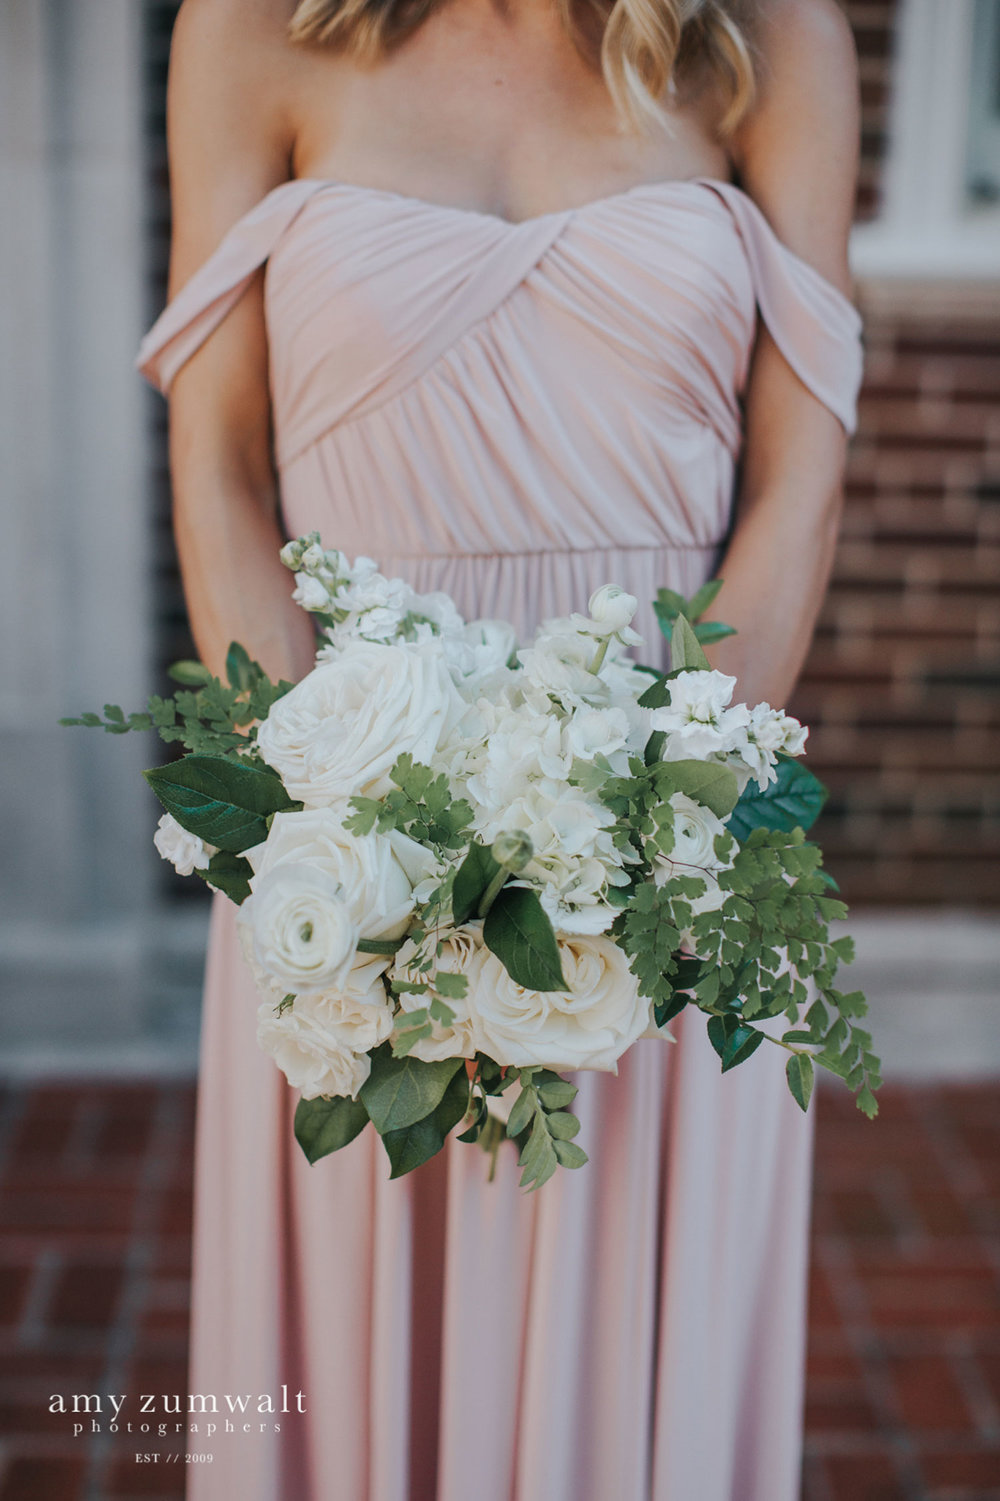 Bridesmaid in mauve bridesmaid dress holding a white and green bouquet